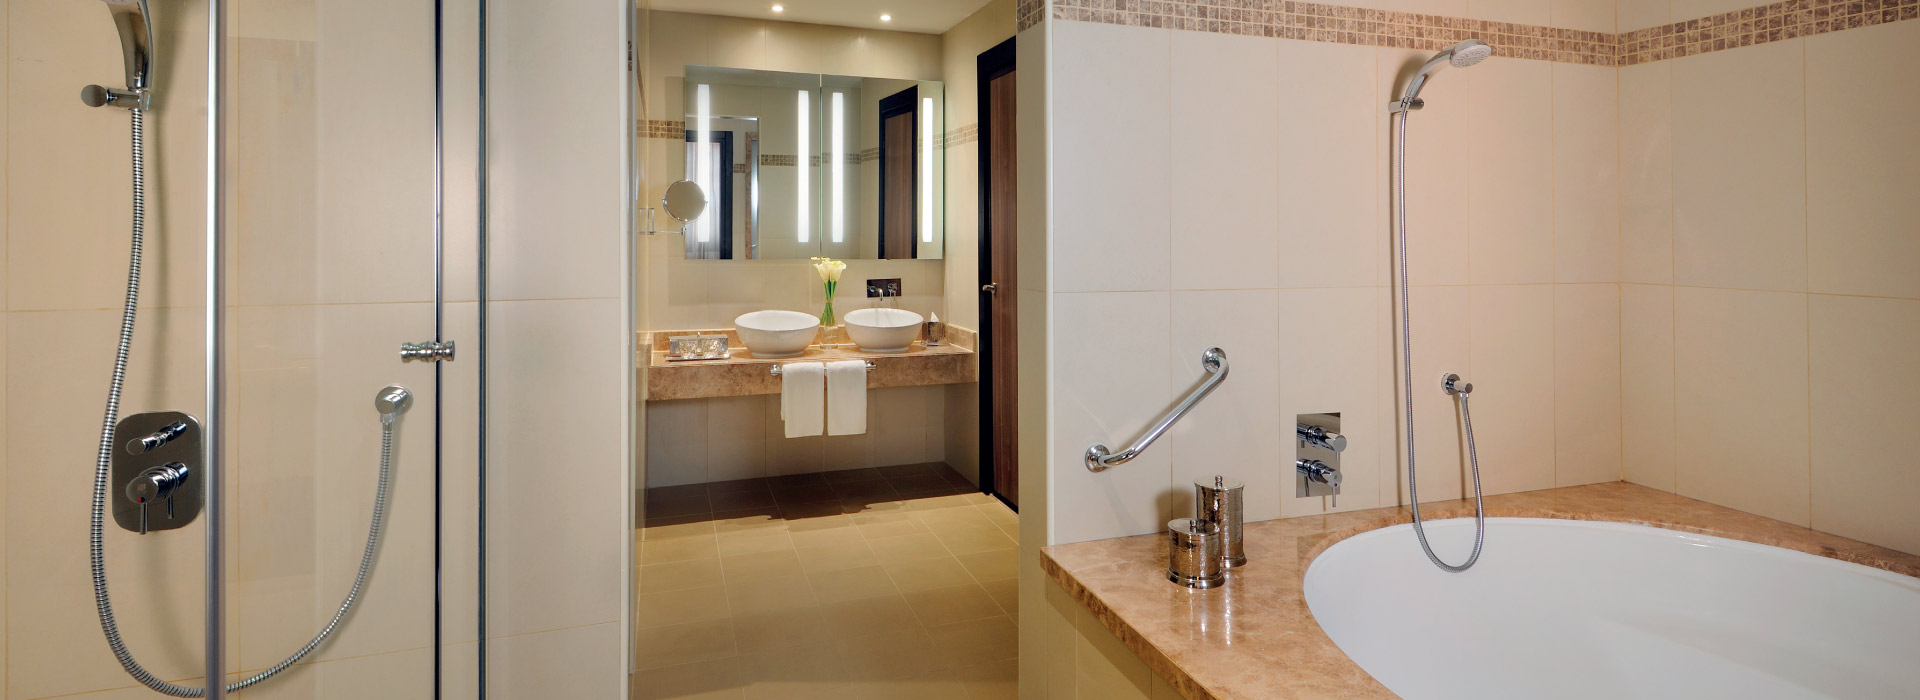 Interior of an executive suite bathroom at AVANI Deira Hotel